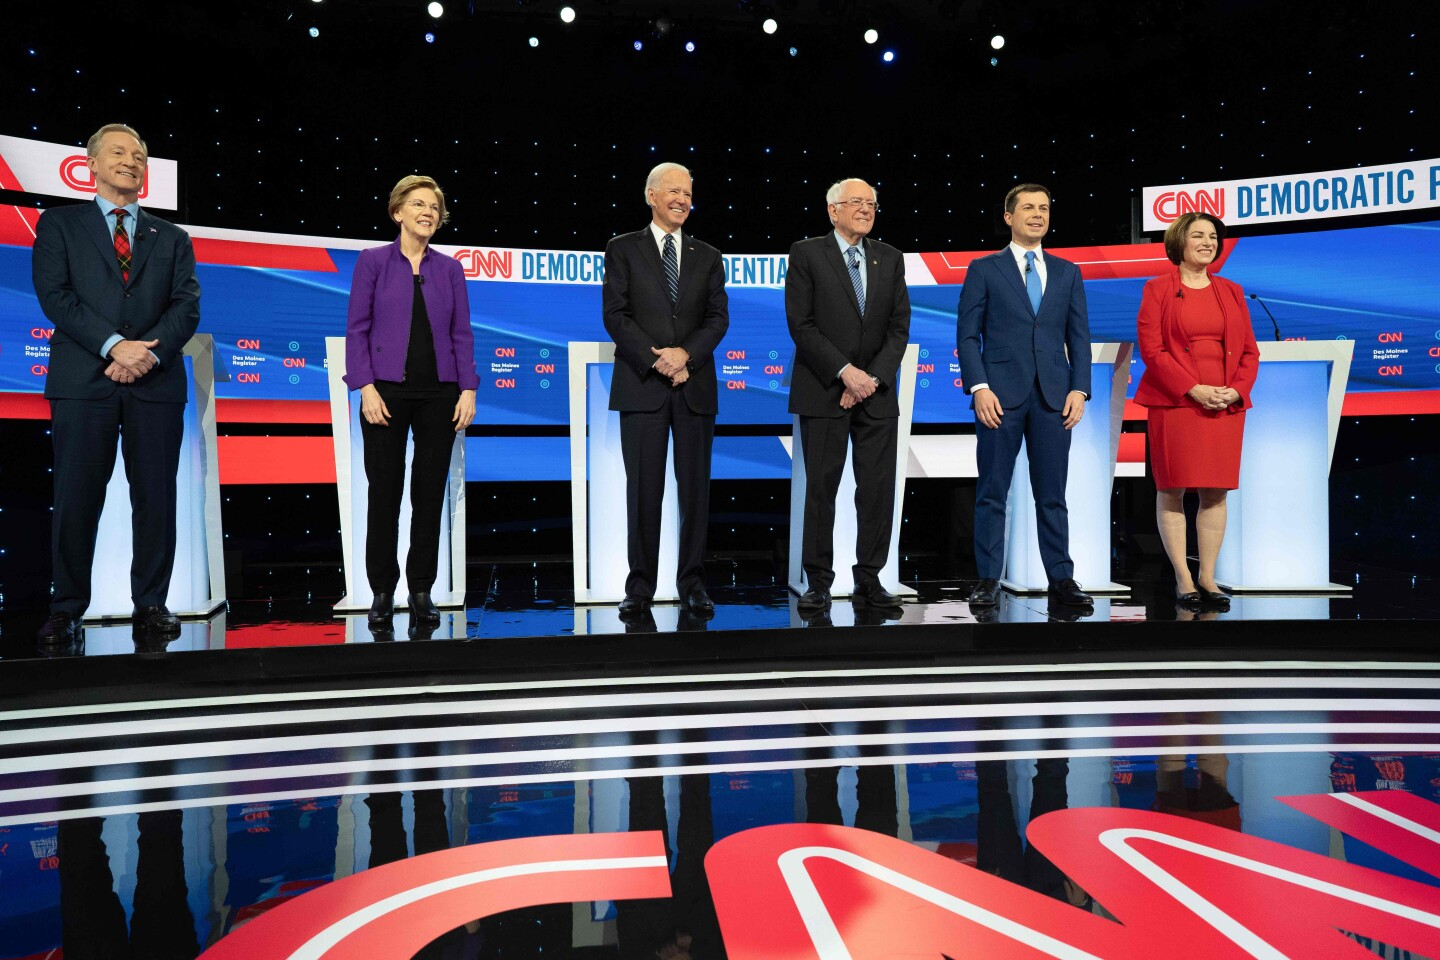 (L-R) Democratic presidential hopefuls billionaire-philanthropist Tom Steyer, Massachusetts Senator Elizabeth Warren, Former Vice President Joe Biden, Vermont Senator Bernie Sanders, Mayor of South Bend, Indiana, Pete Buttigieg and Minnesota Senator Amy Klobuchar stand on stage ahead of the seventh Democratic primary debate of the 2020 presidential campaign season co-hosted by CNN and the Des Moines Register at the Drake University campus in Des Moines, Iowa on January 14, 2020. (Photo by kerem yucel / AFP) (Photo by KEREM YUCEL/AFP via Getty Images) ** OUTS - ELSENT, FPG, CM - OUTS * NM, PH, VA if sourced by CT, LA or MoD **